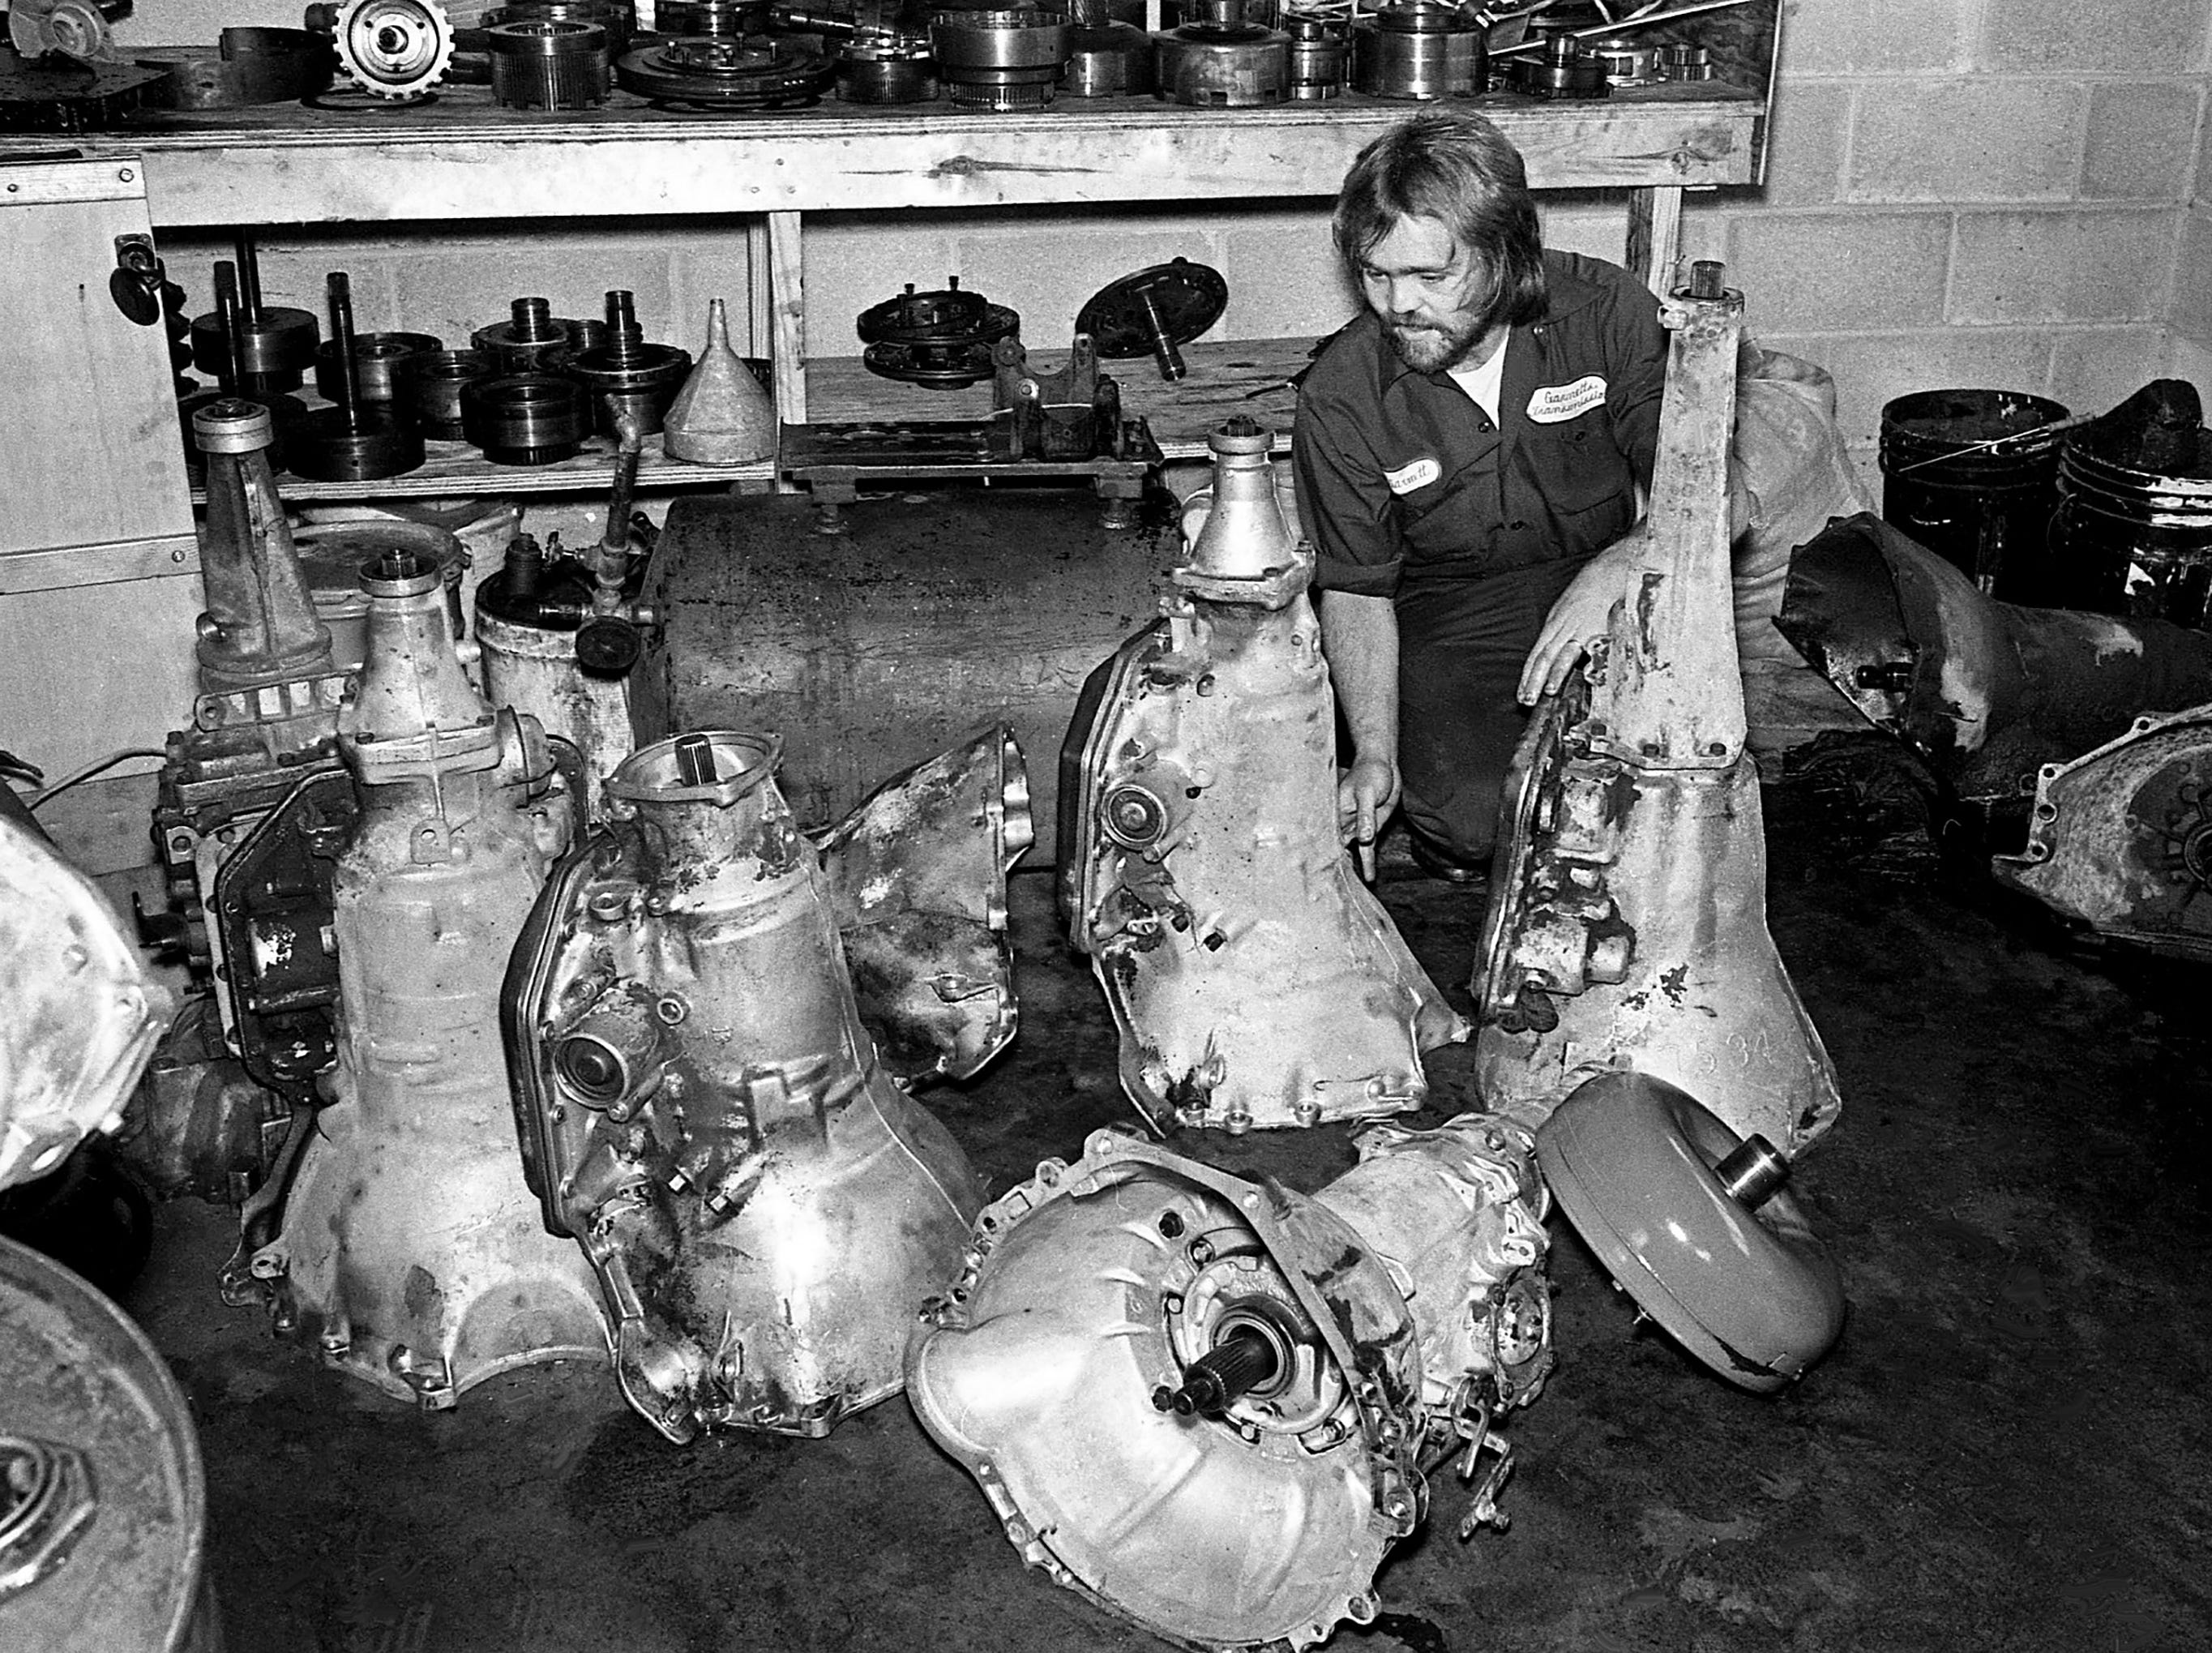 Garnett Neagle, who is blind after a motorcycle accident, works on a transmission at his shop in Portland on Feb. 2, 1979. After going to Nashville Auto Diesel College and working a year at Nashville Transmission, Neagle opened his own shop in 1977.